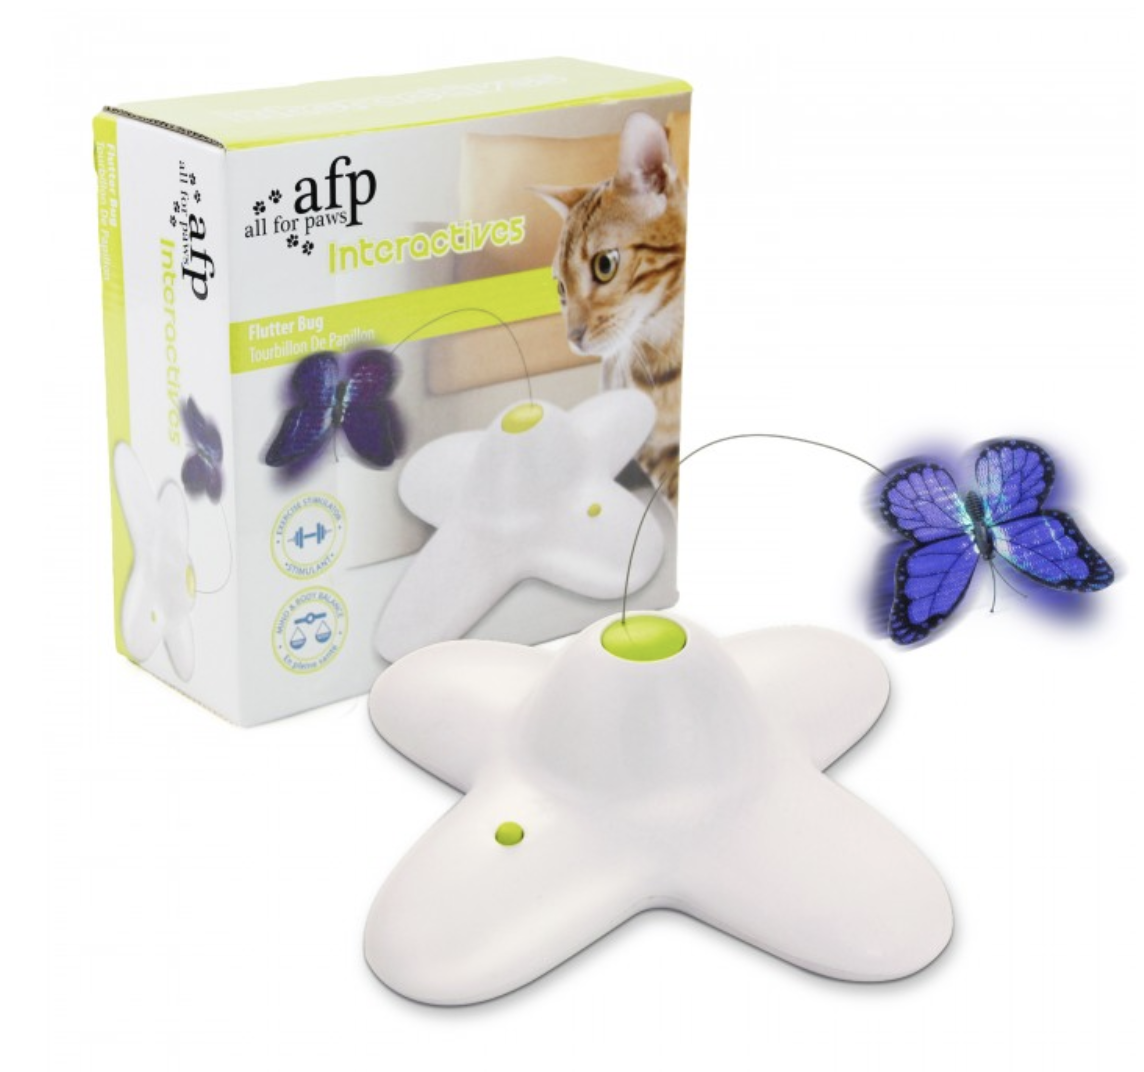 Flutter Bug Smart Toy Cat